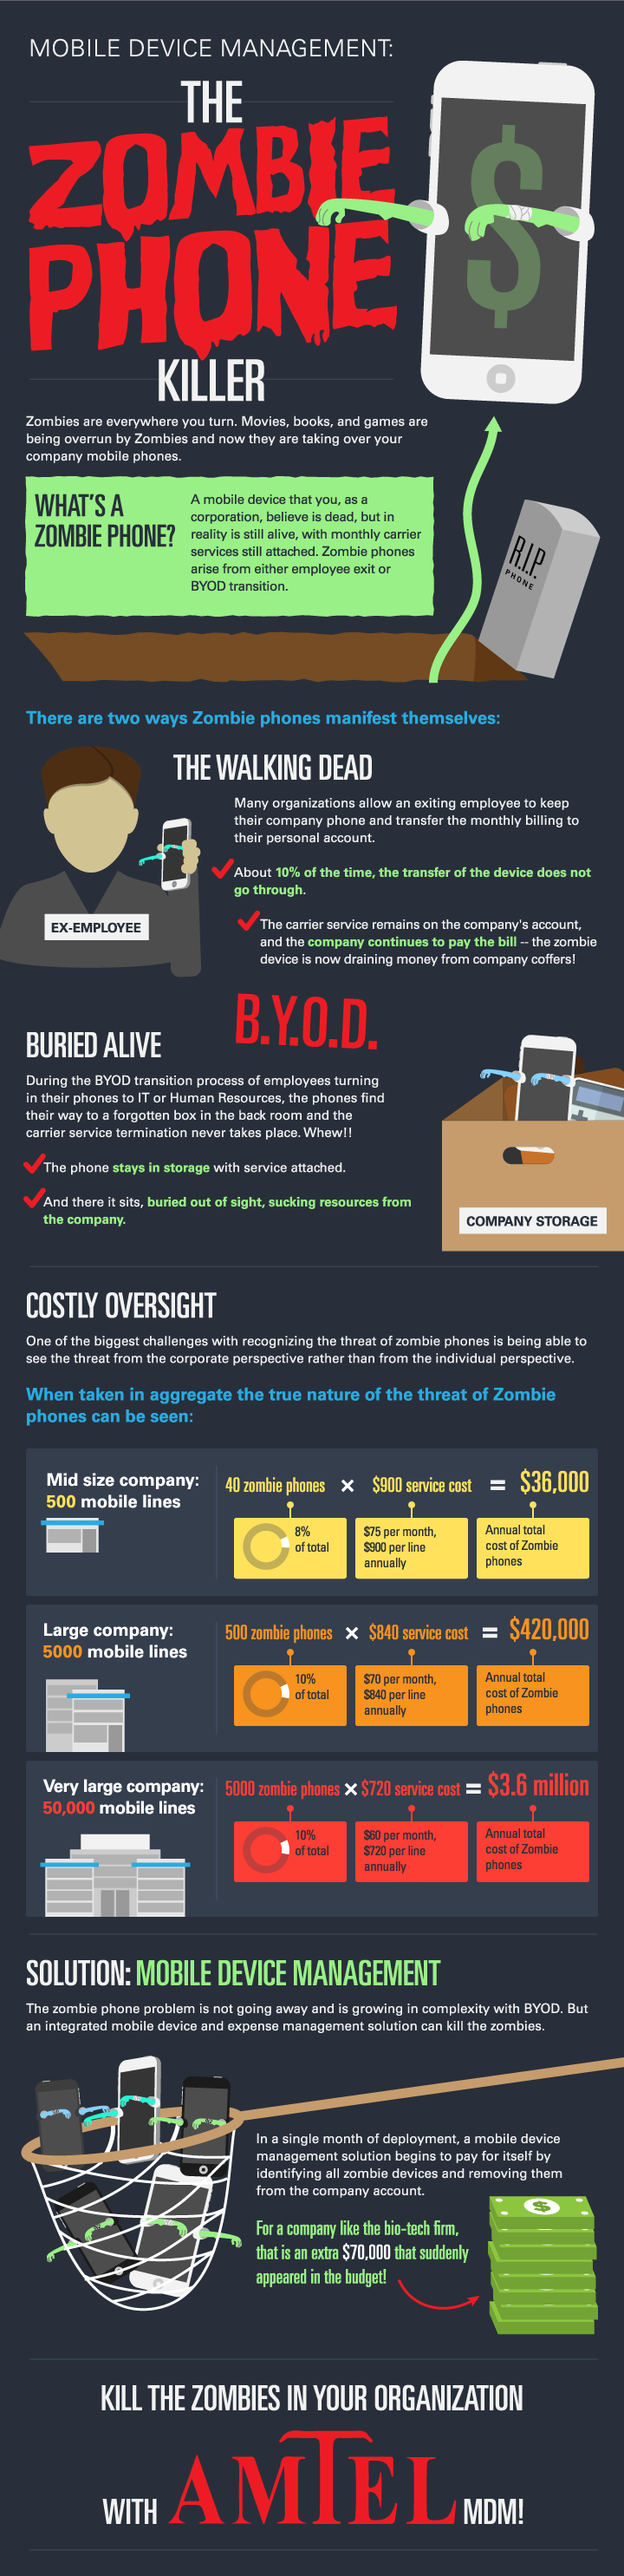 Mobile-Device-Management-The-Zombie-Phone-Killer   #Infographic